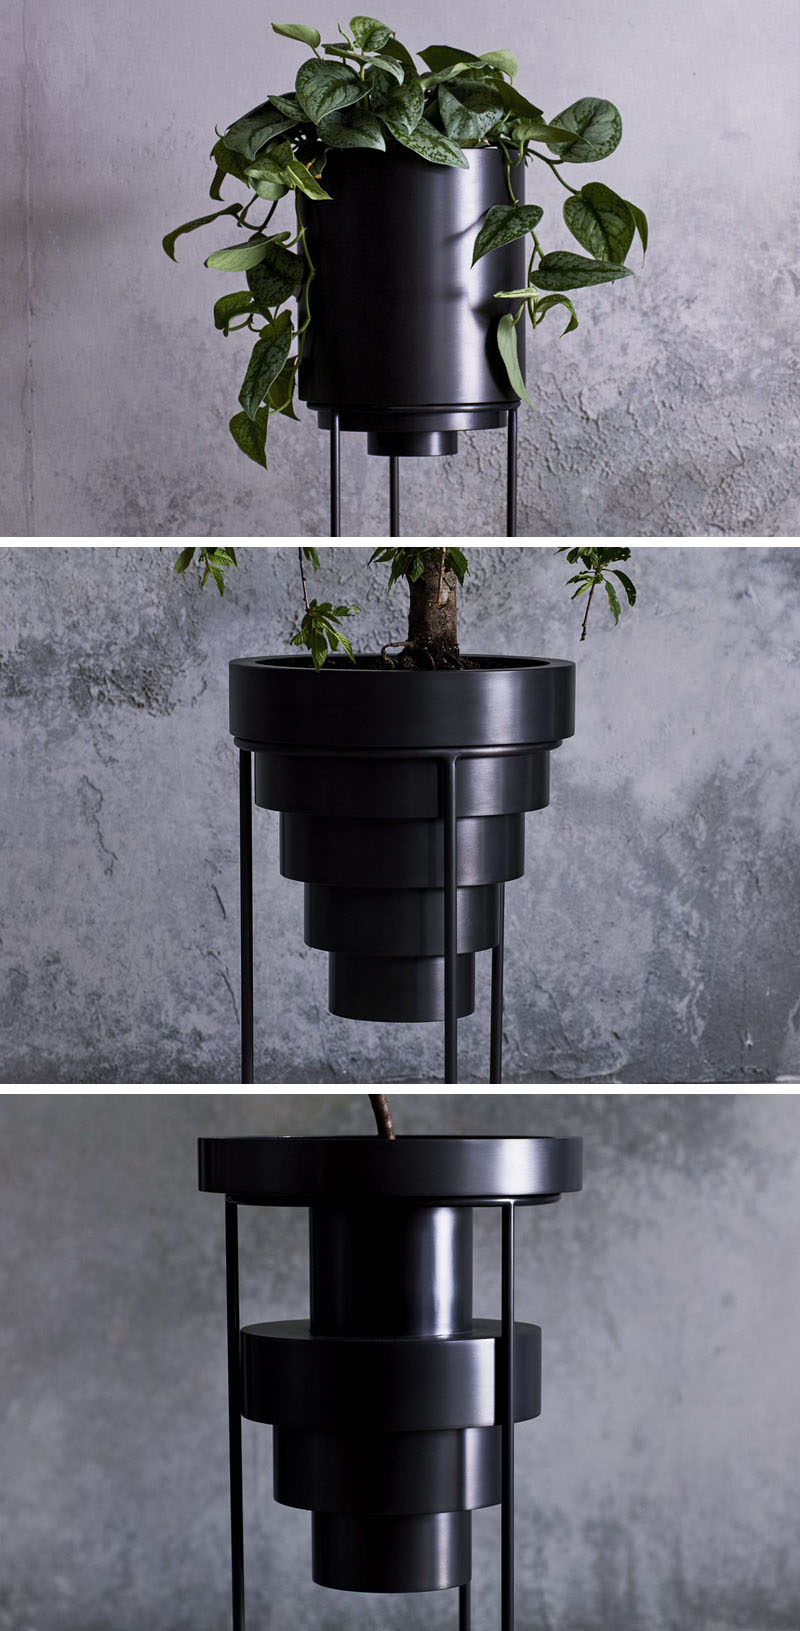 New York based designer and artist Anna Karlin, has created a collection of modern plant stands named 'Layered Planters', that are made from cold rolled stainless steel. #ModernPlanters #MinimalistHomeDecor